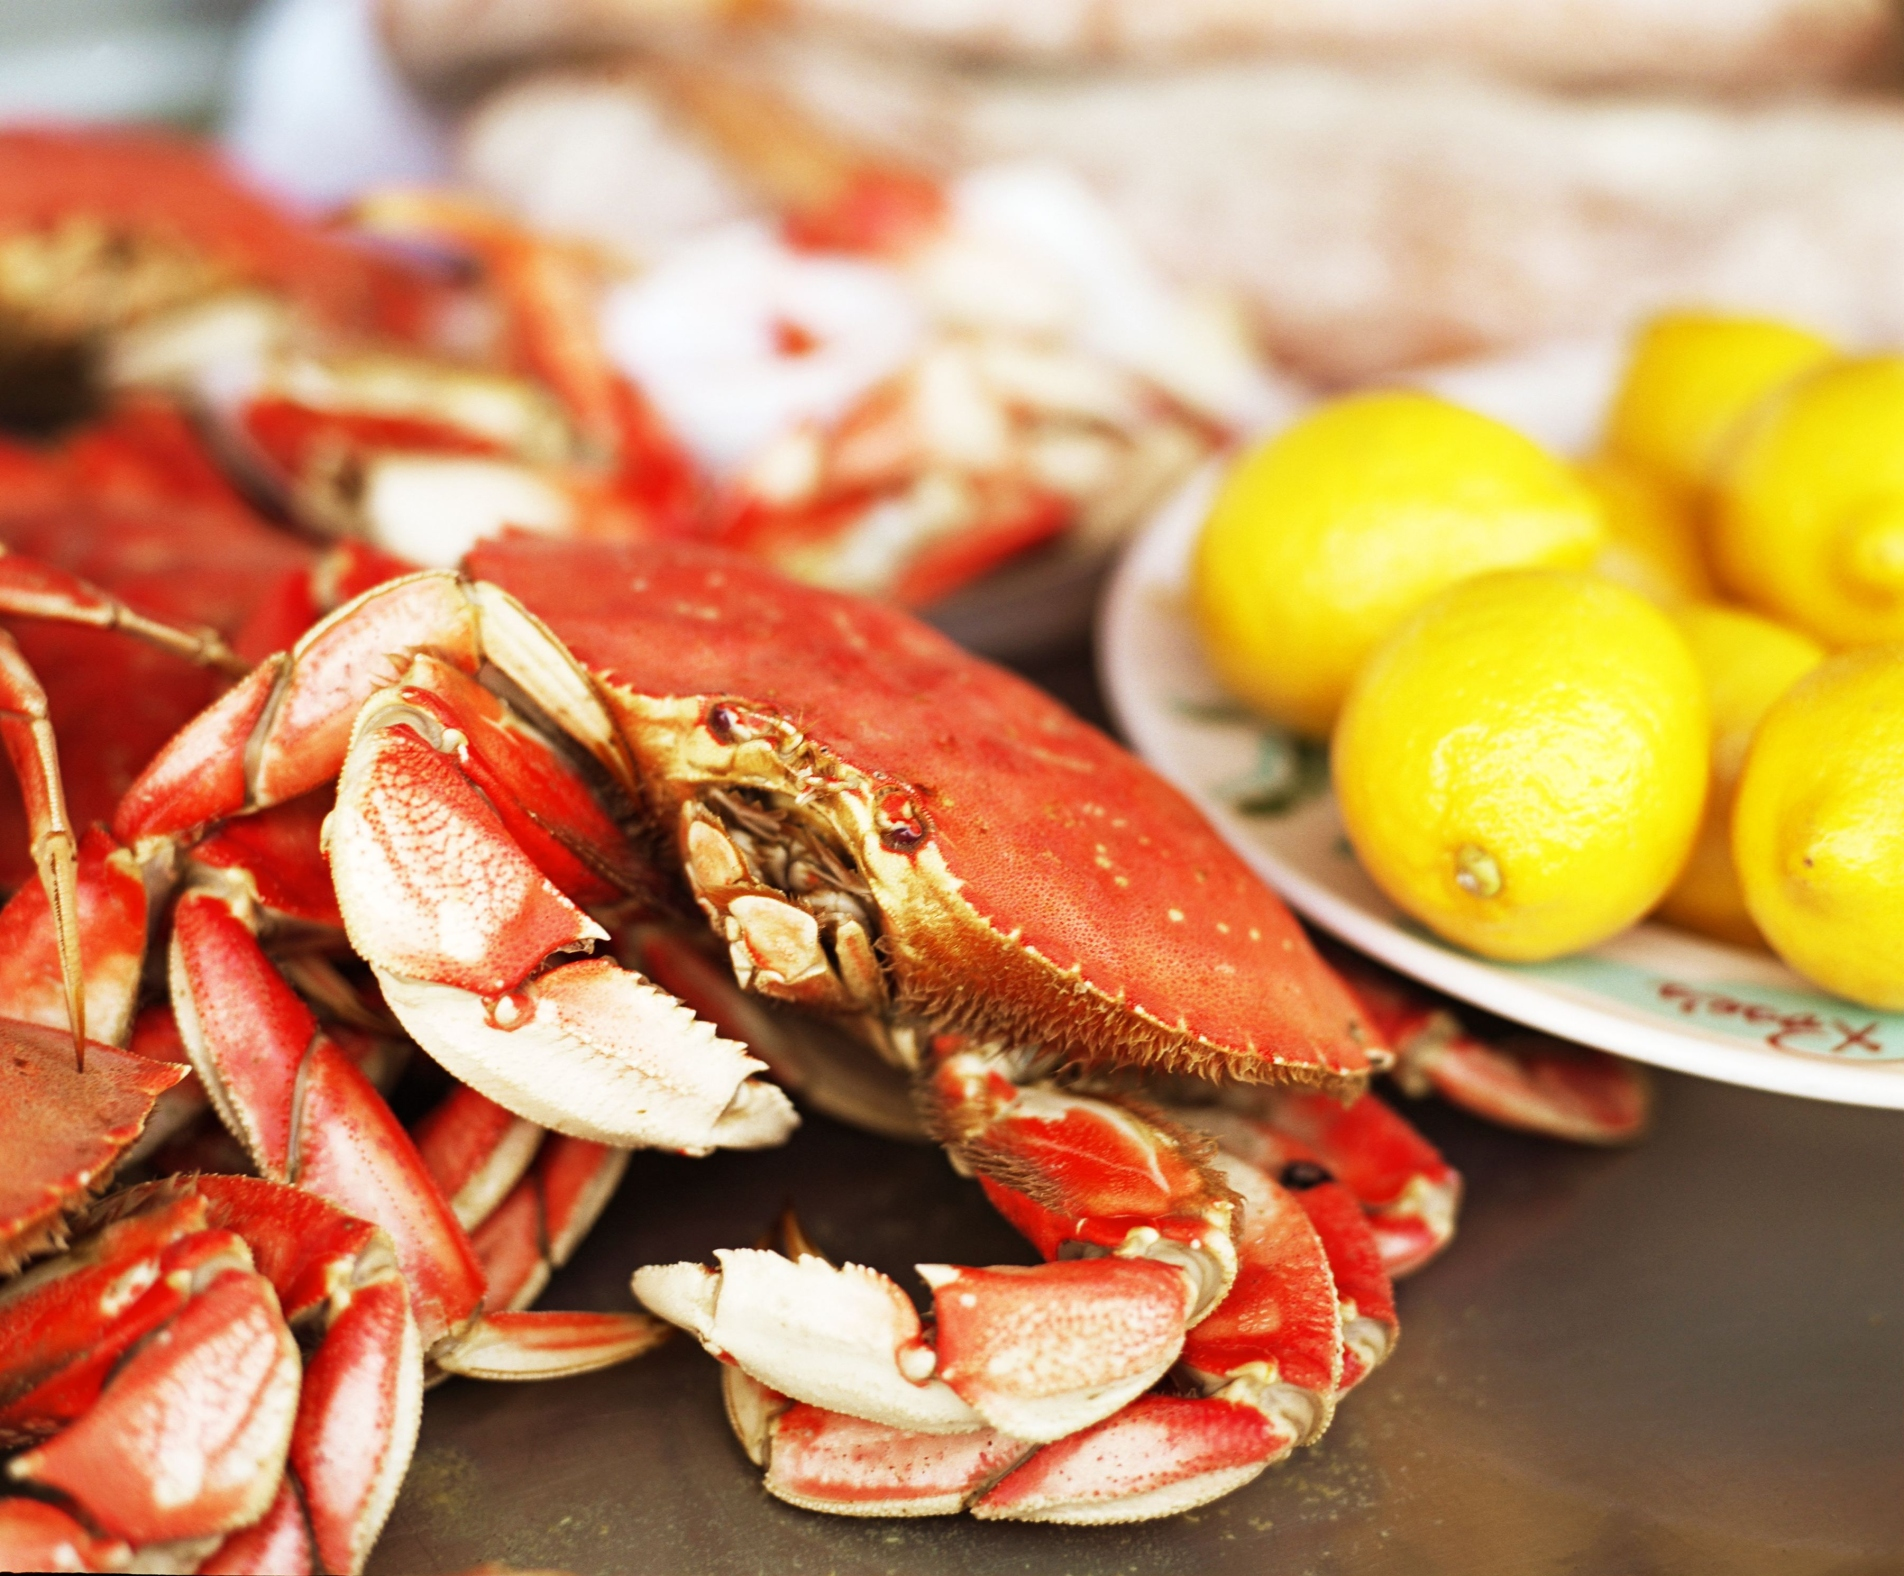 Seafood smells more appetizing with lemon juice.